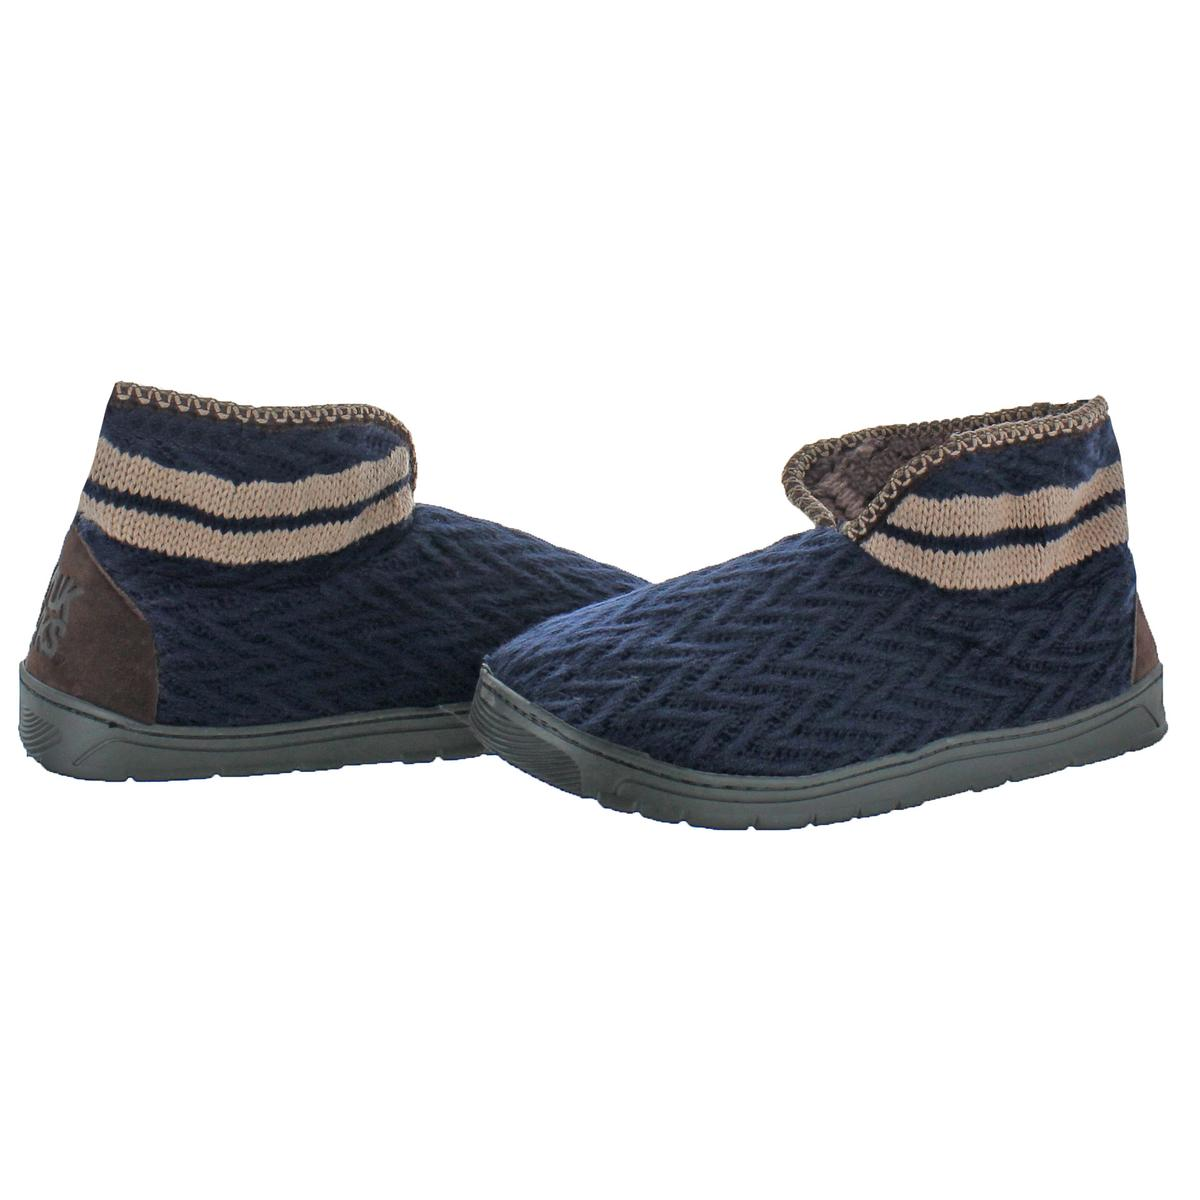 Mukluks-Men-039-s-Mark-Sweater-Knit-Furpa-Ankle-Bootie-House-Slippers thumbnail 15